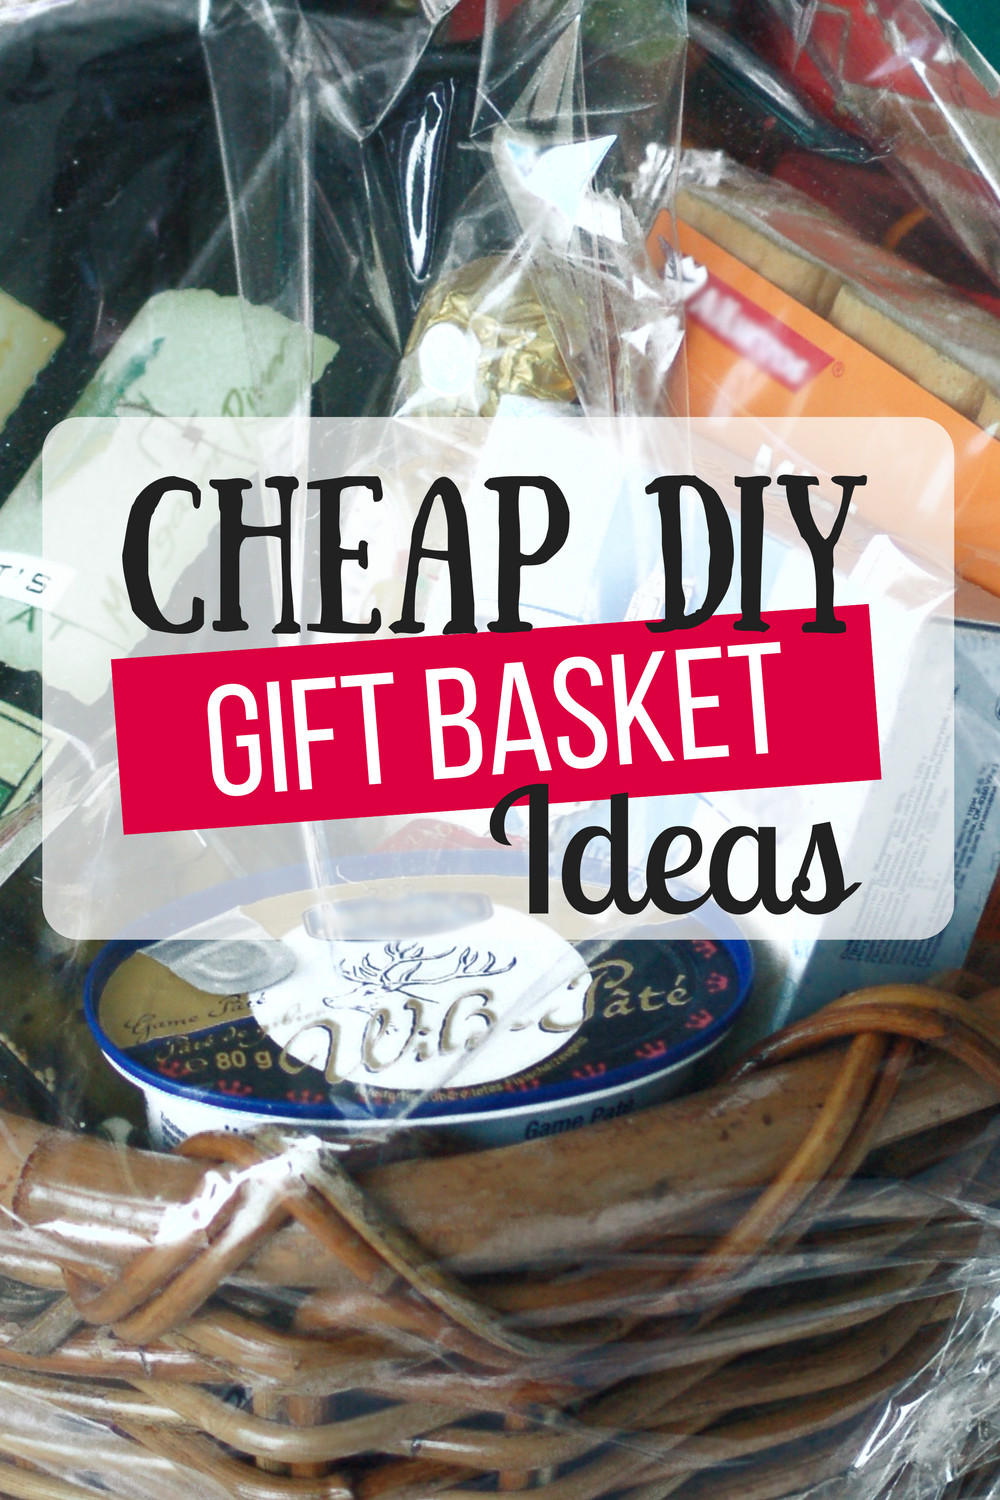 Best ideas about Diy Couples Gift Ideas . Save or Pin Cheap DIY Gift Baskets The Busy Bud er Now.